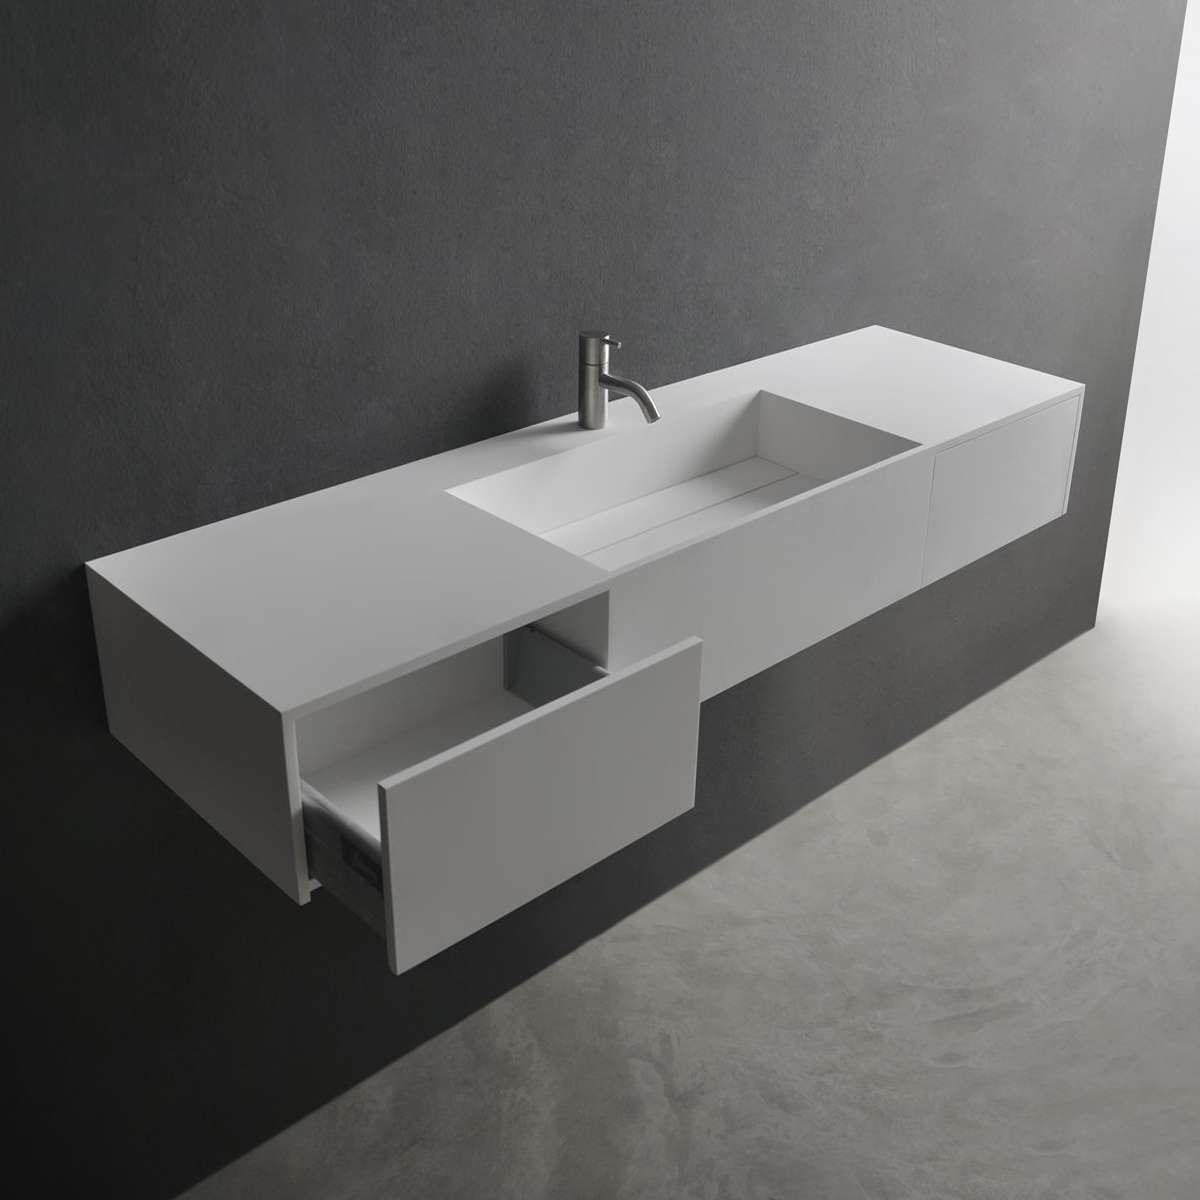 Cool Bathroom : Bathroom Modern Sinks And Vanities Scenic House Modern within Designer Bathroom Sinks